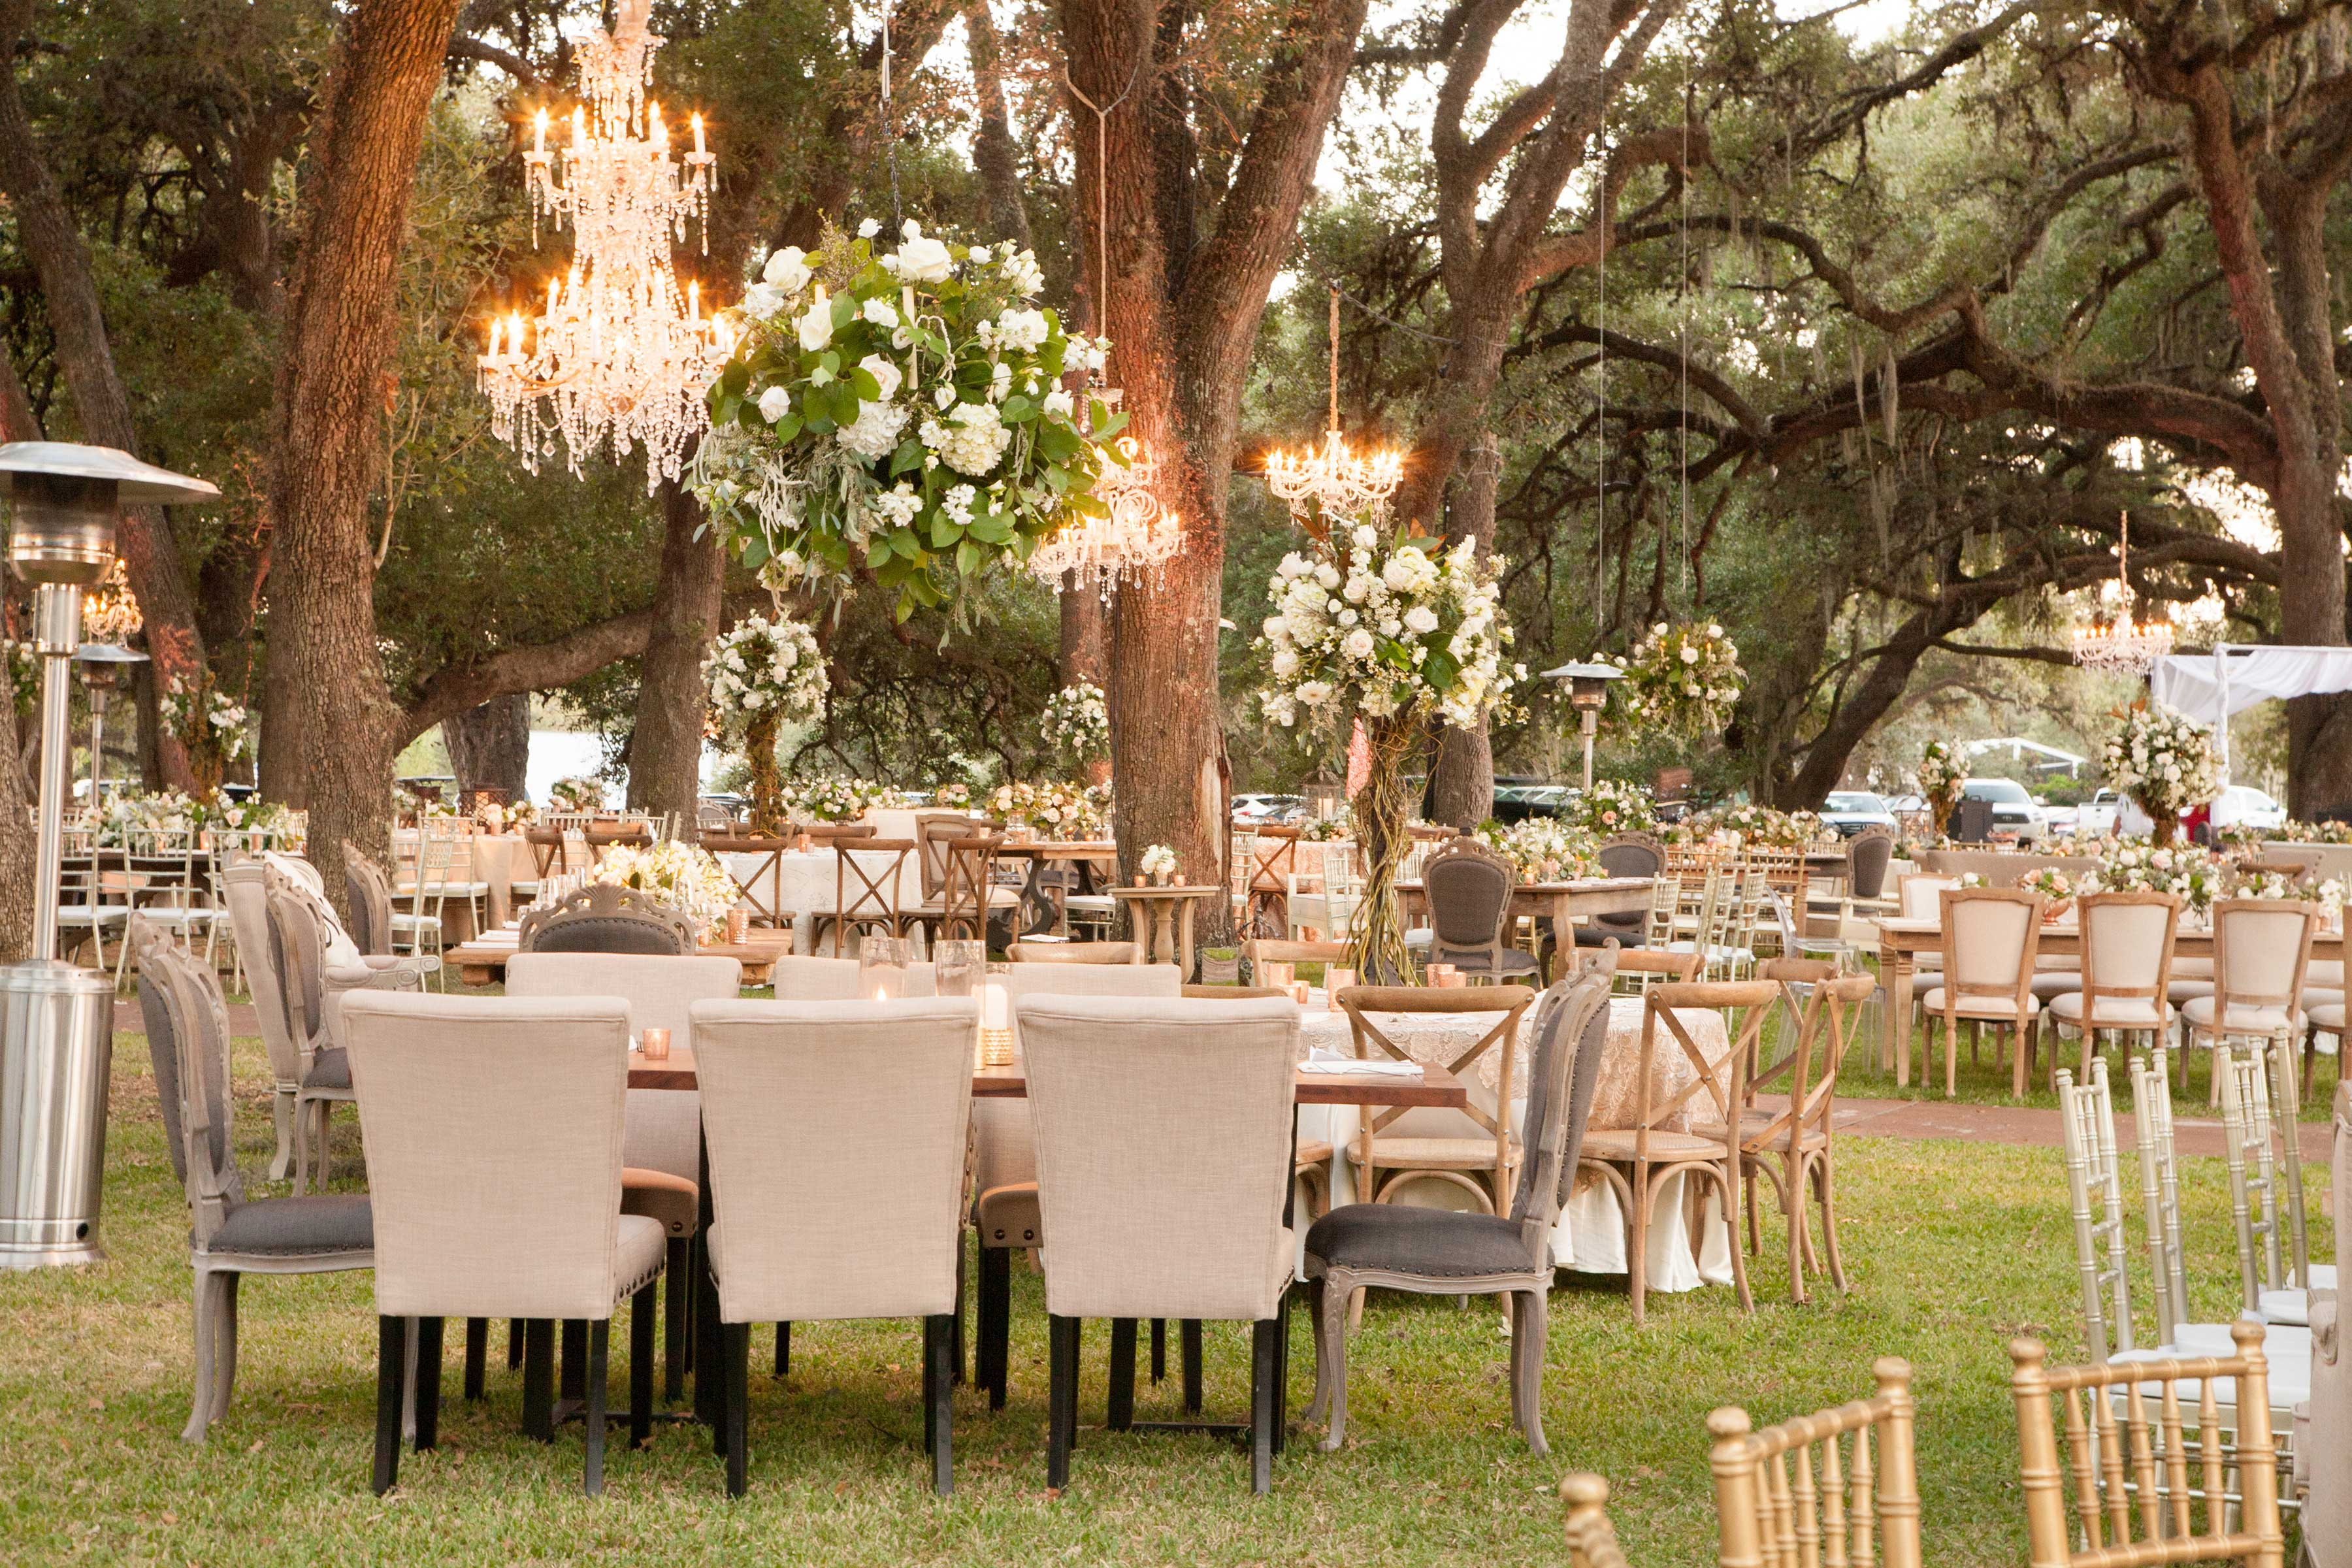 popular real wedding inside weddings outdoor texas reception on grass ann whittington events